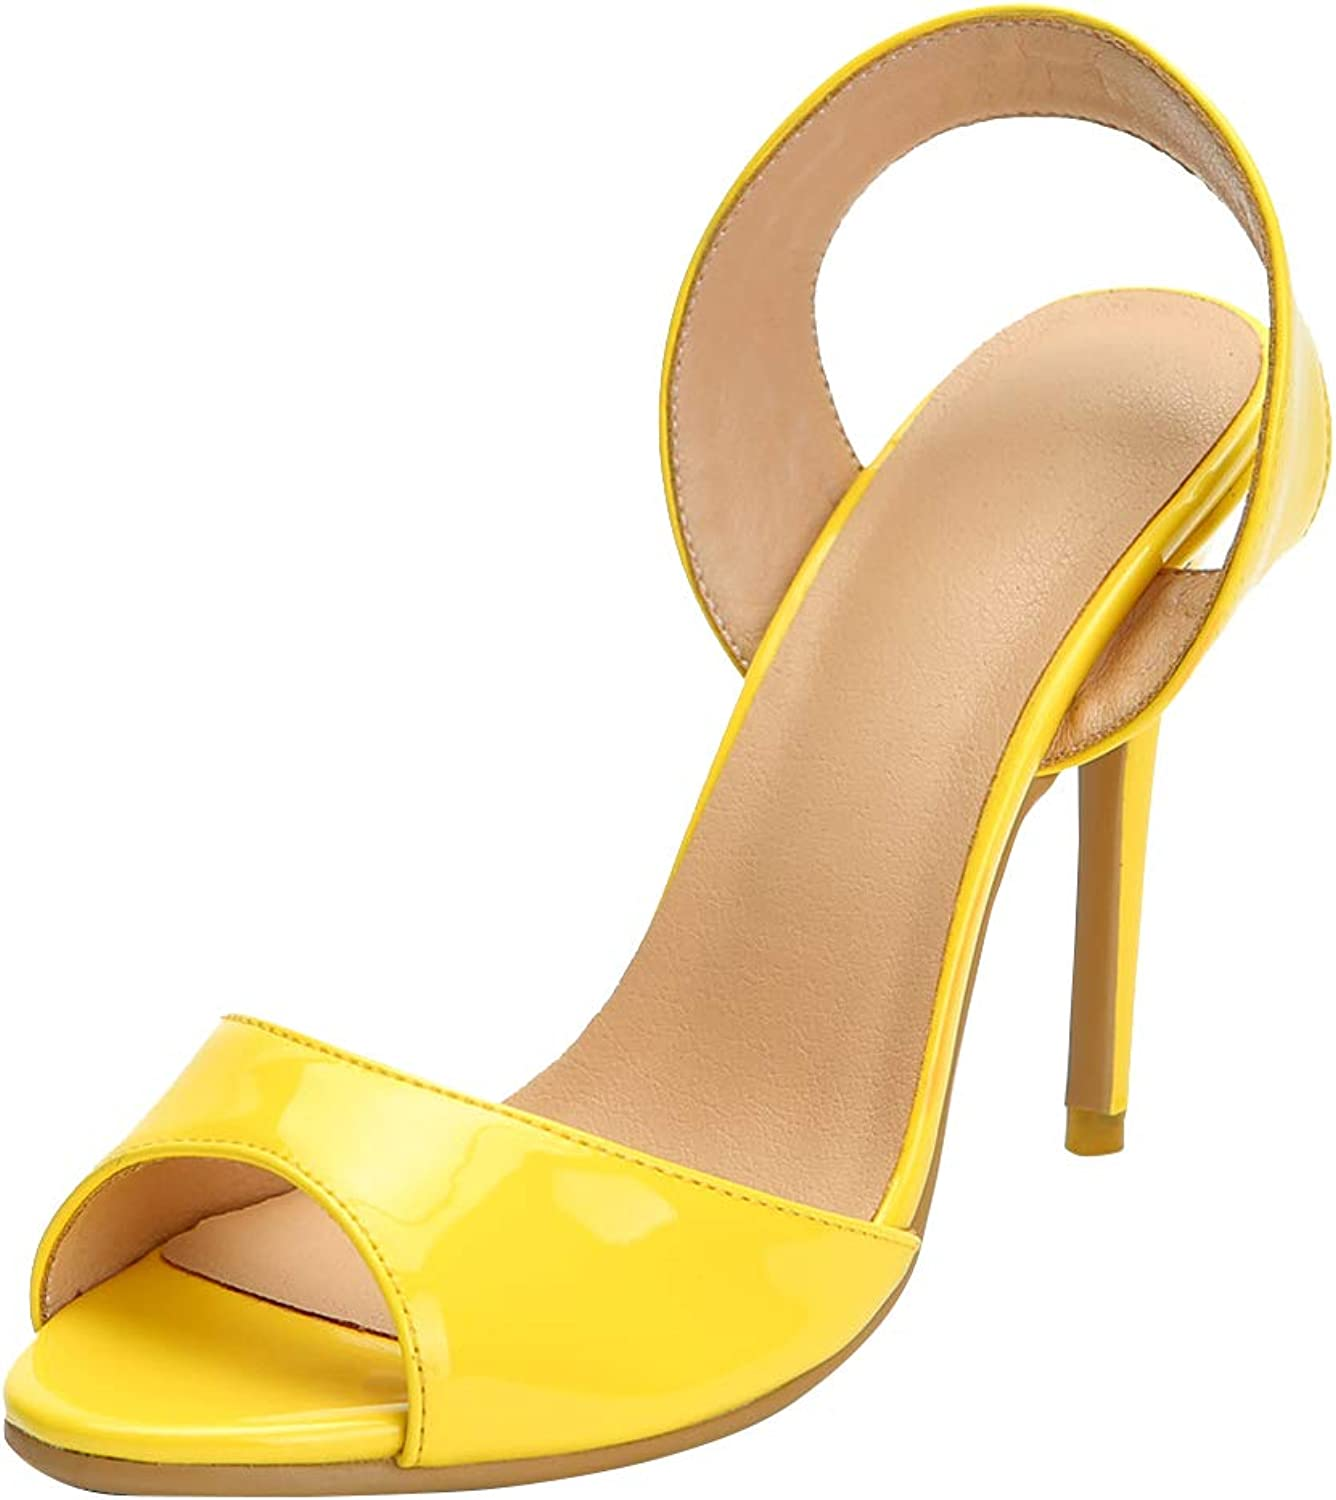 CASSOCK Women's Stiletto Sandals D'Orsay Style Slingback Sexy Office Party Club Fashion shoes Yellow